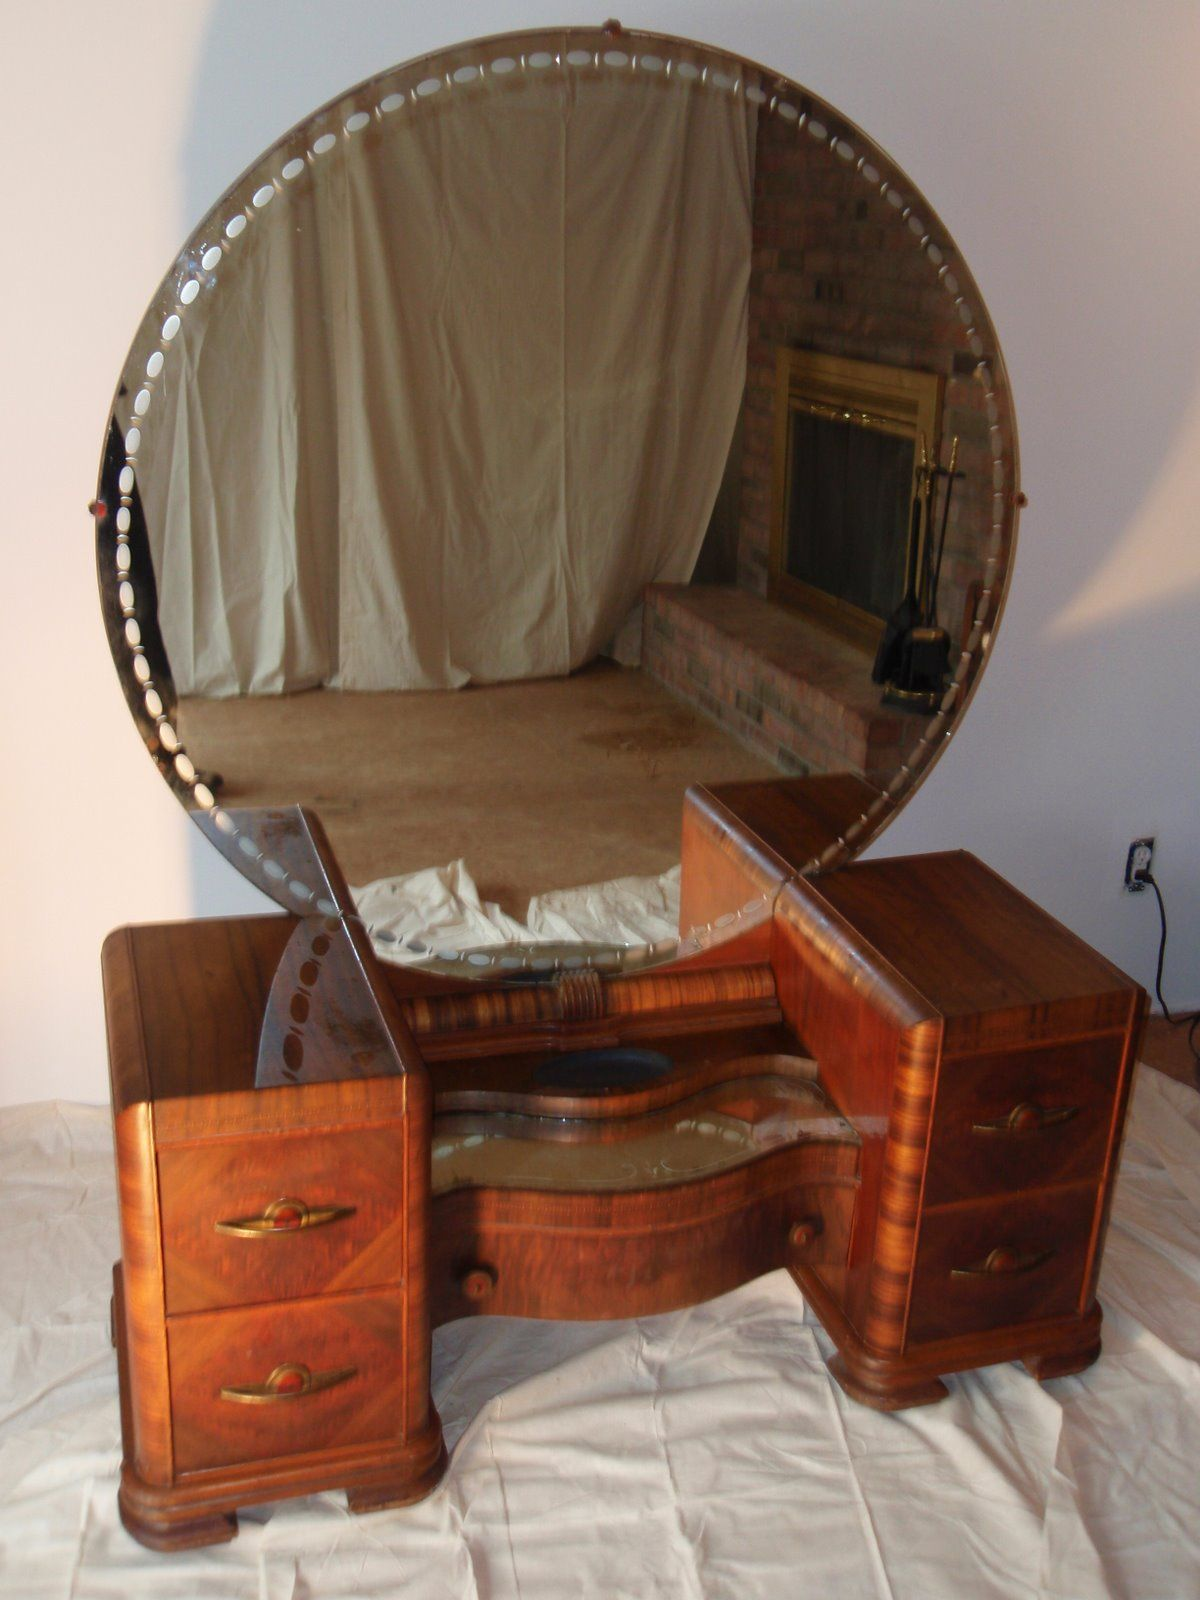 Antique Vanity Dresser With Round Mirror Bestdressers 2017